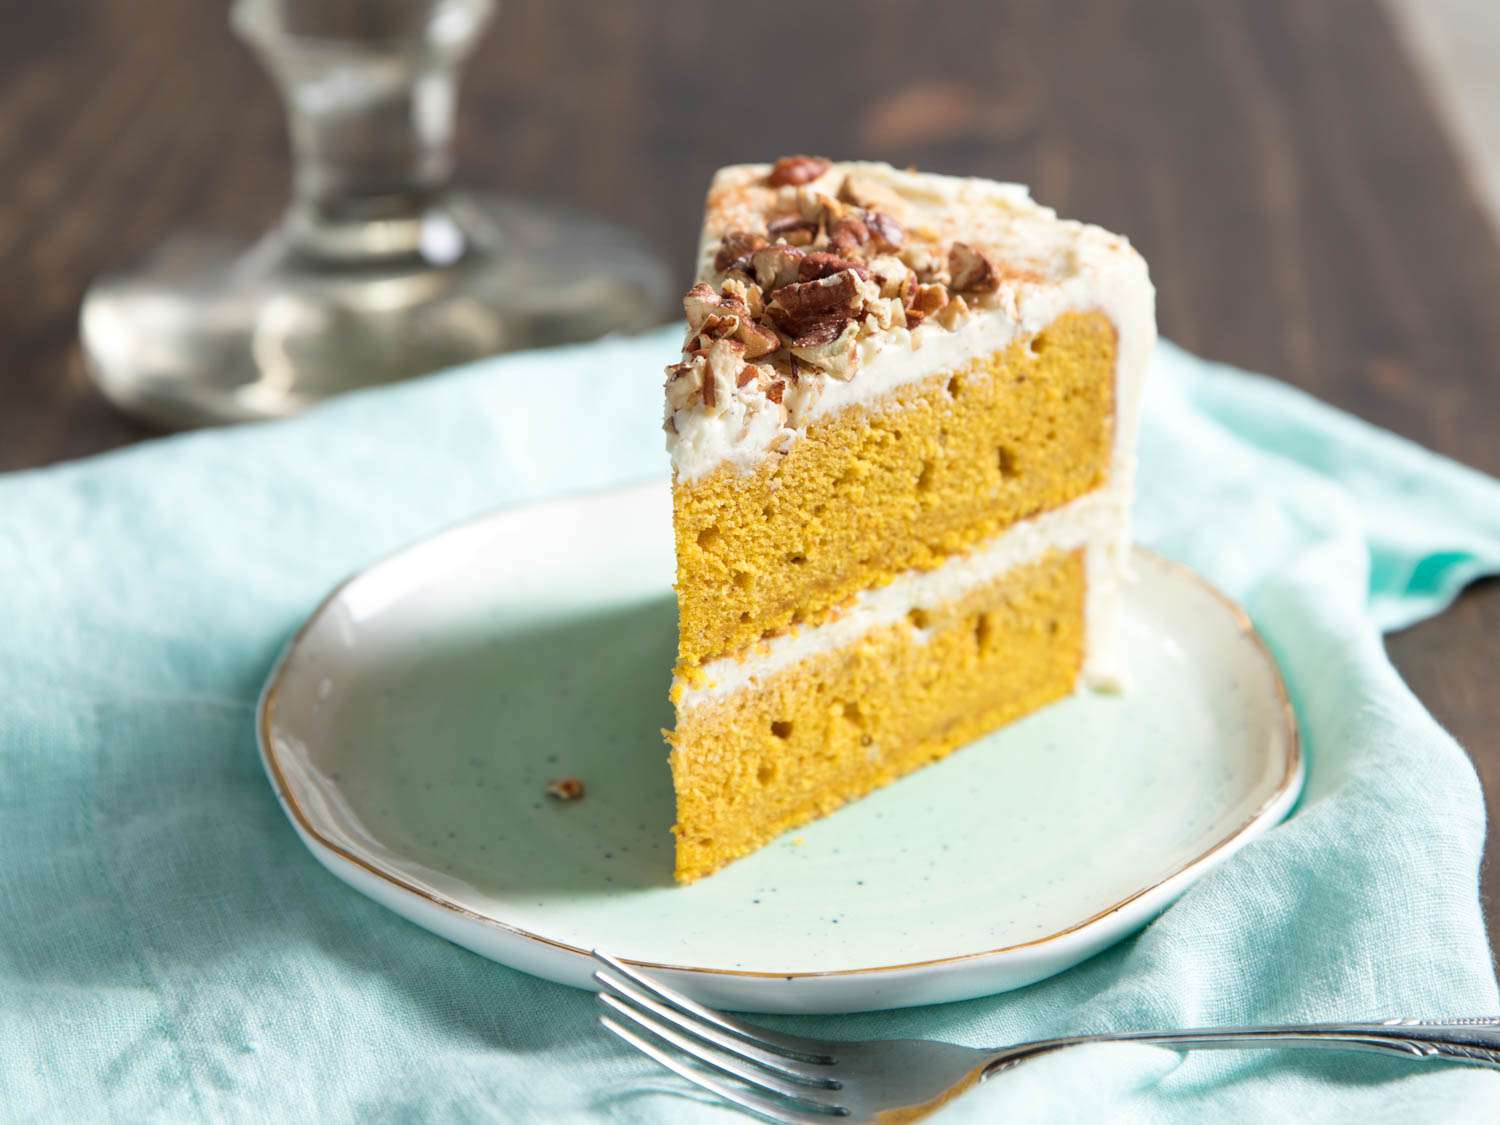 A wedge of pumpkin layer cake with cream cheese buttercream, on a plate